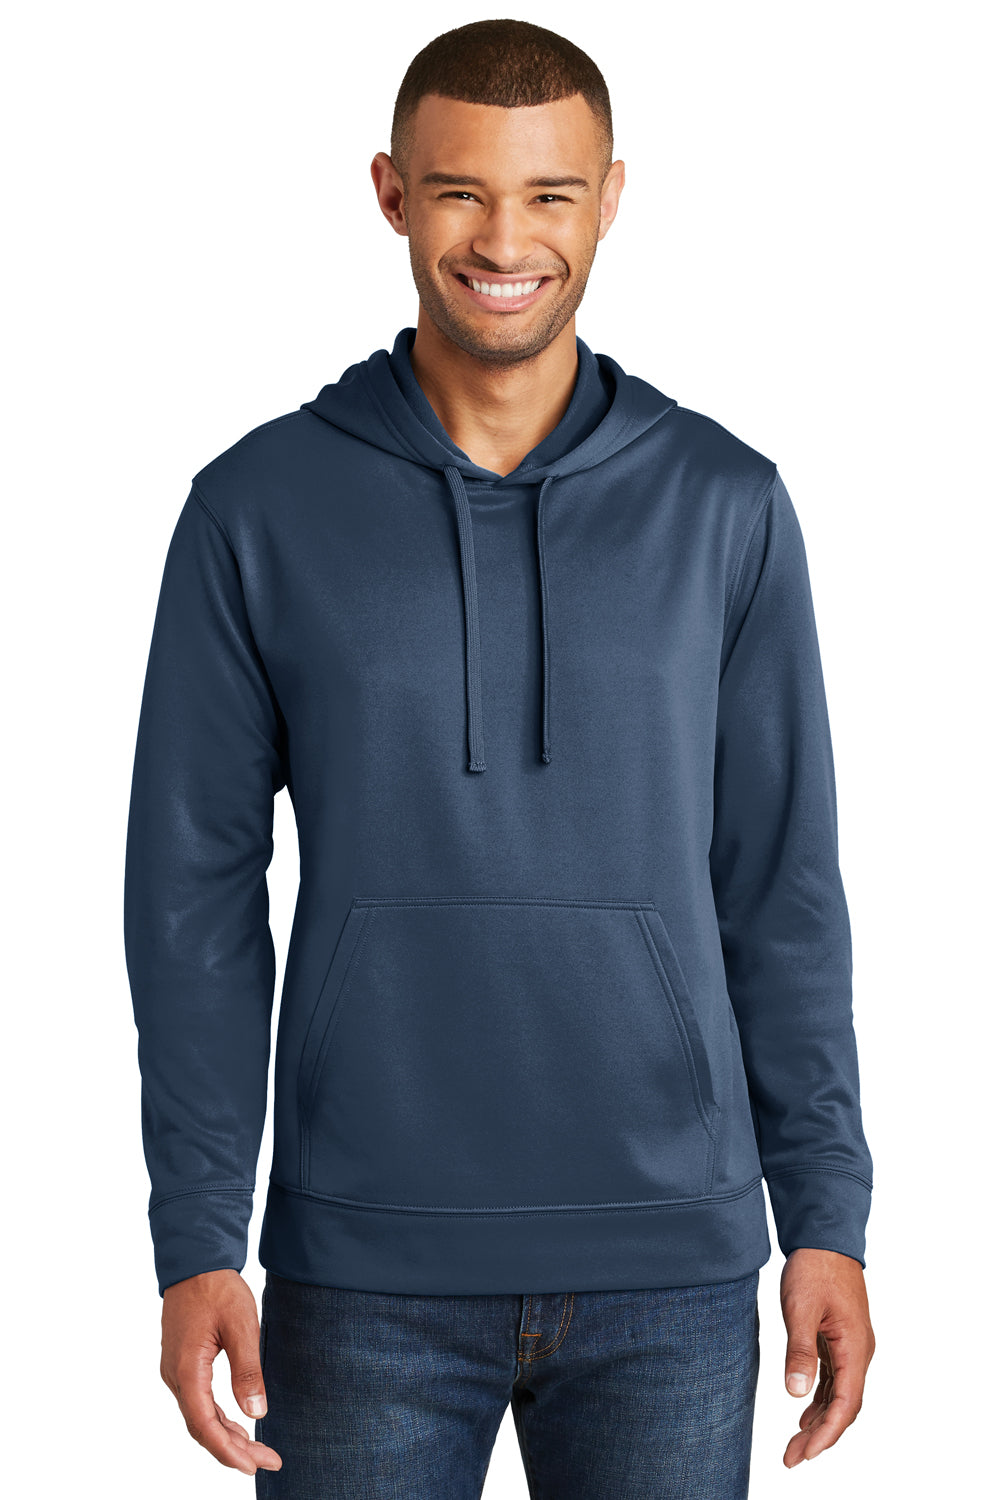 Port & Company PC590H Mens Dry Zone Performance Moisture Wicking Fleece Hooded Sweatshirt Hoodie Navy Blue Front